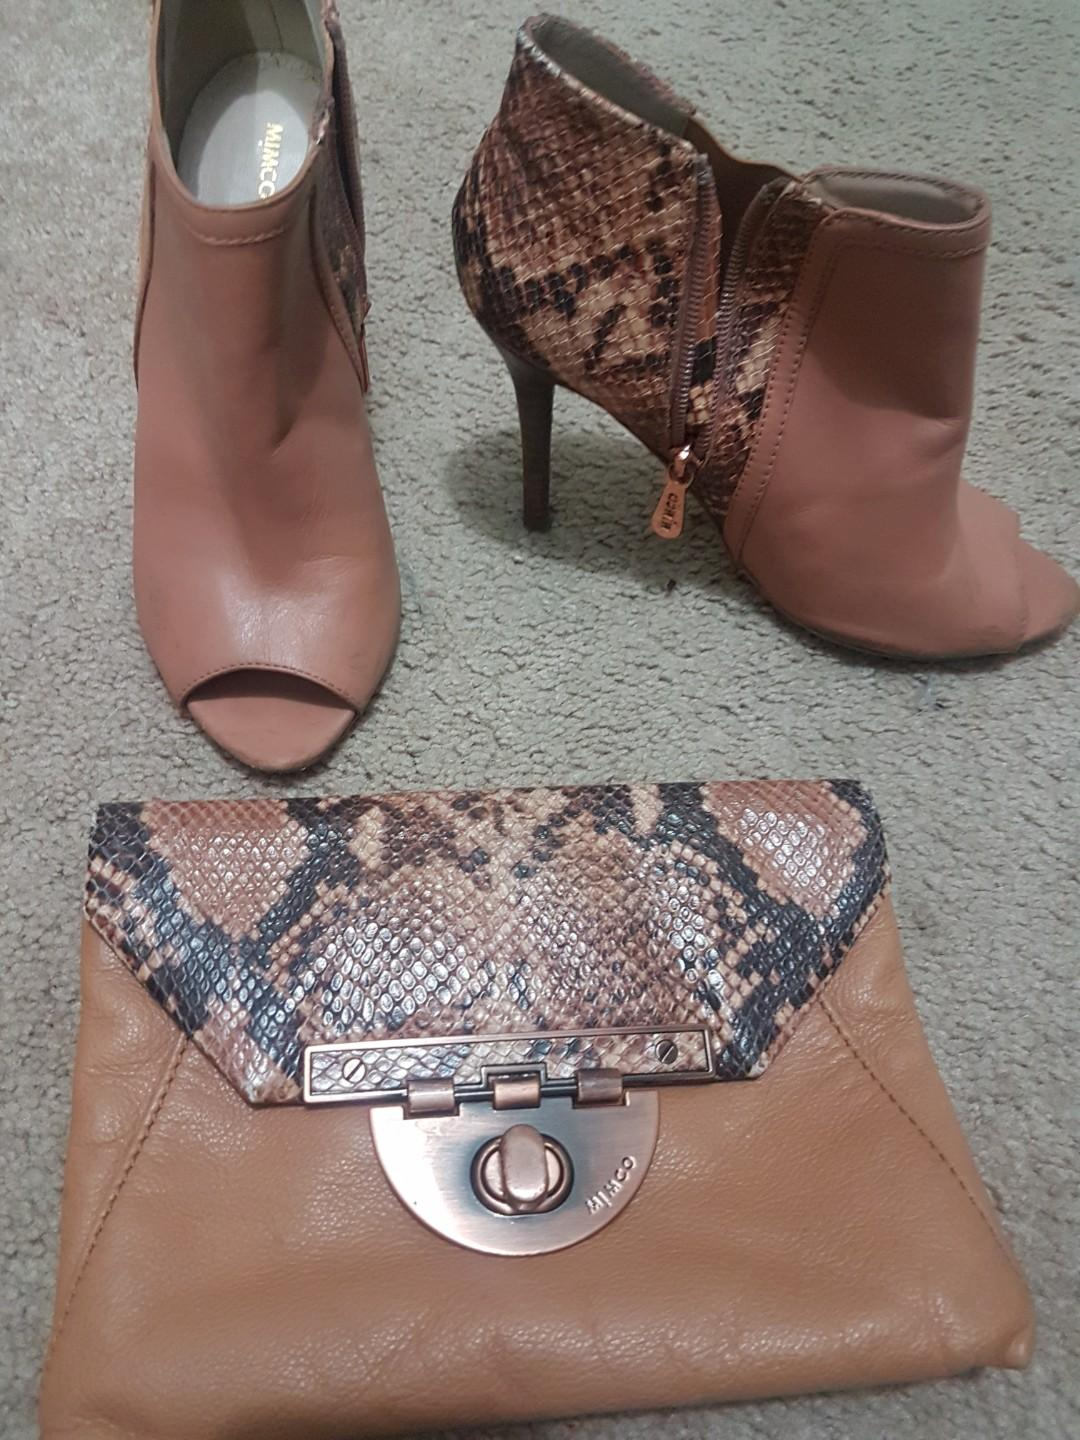 Mimco leather clutch and matching ankle boots